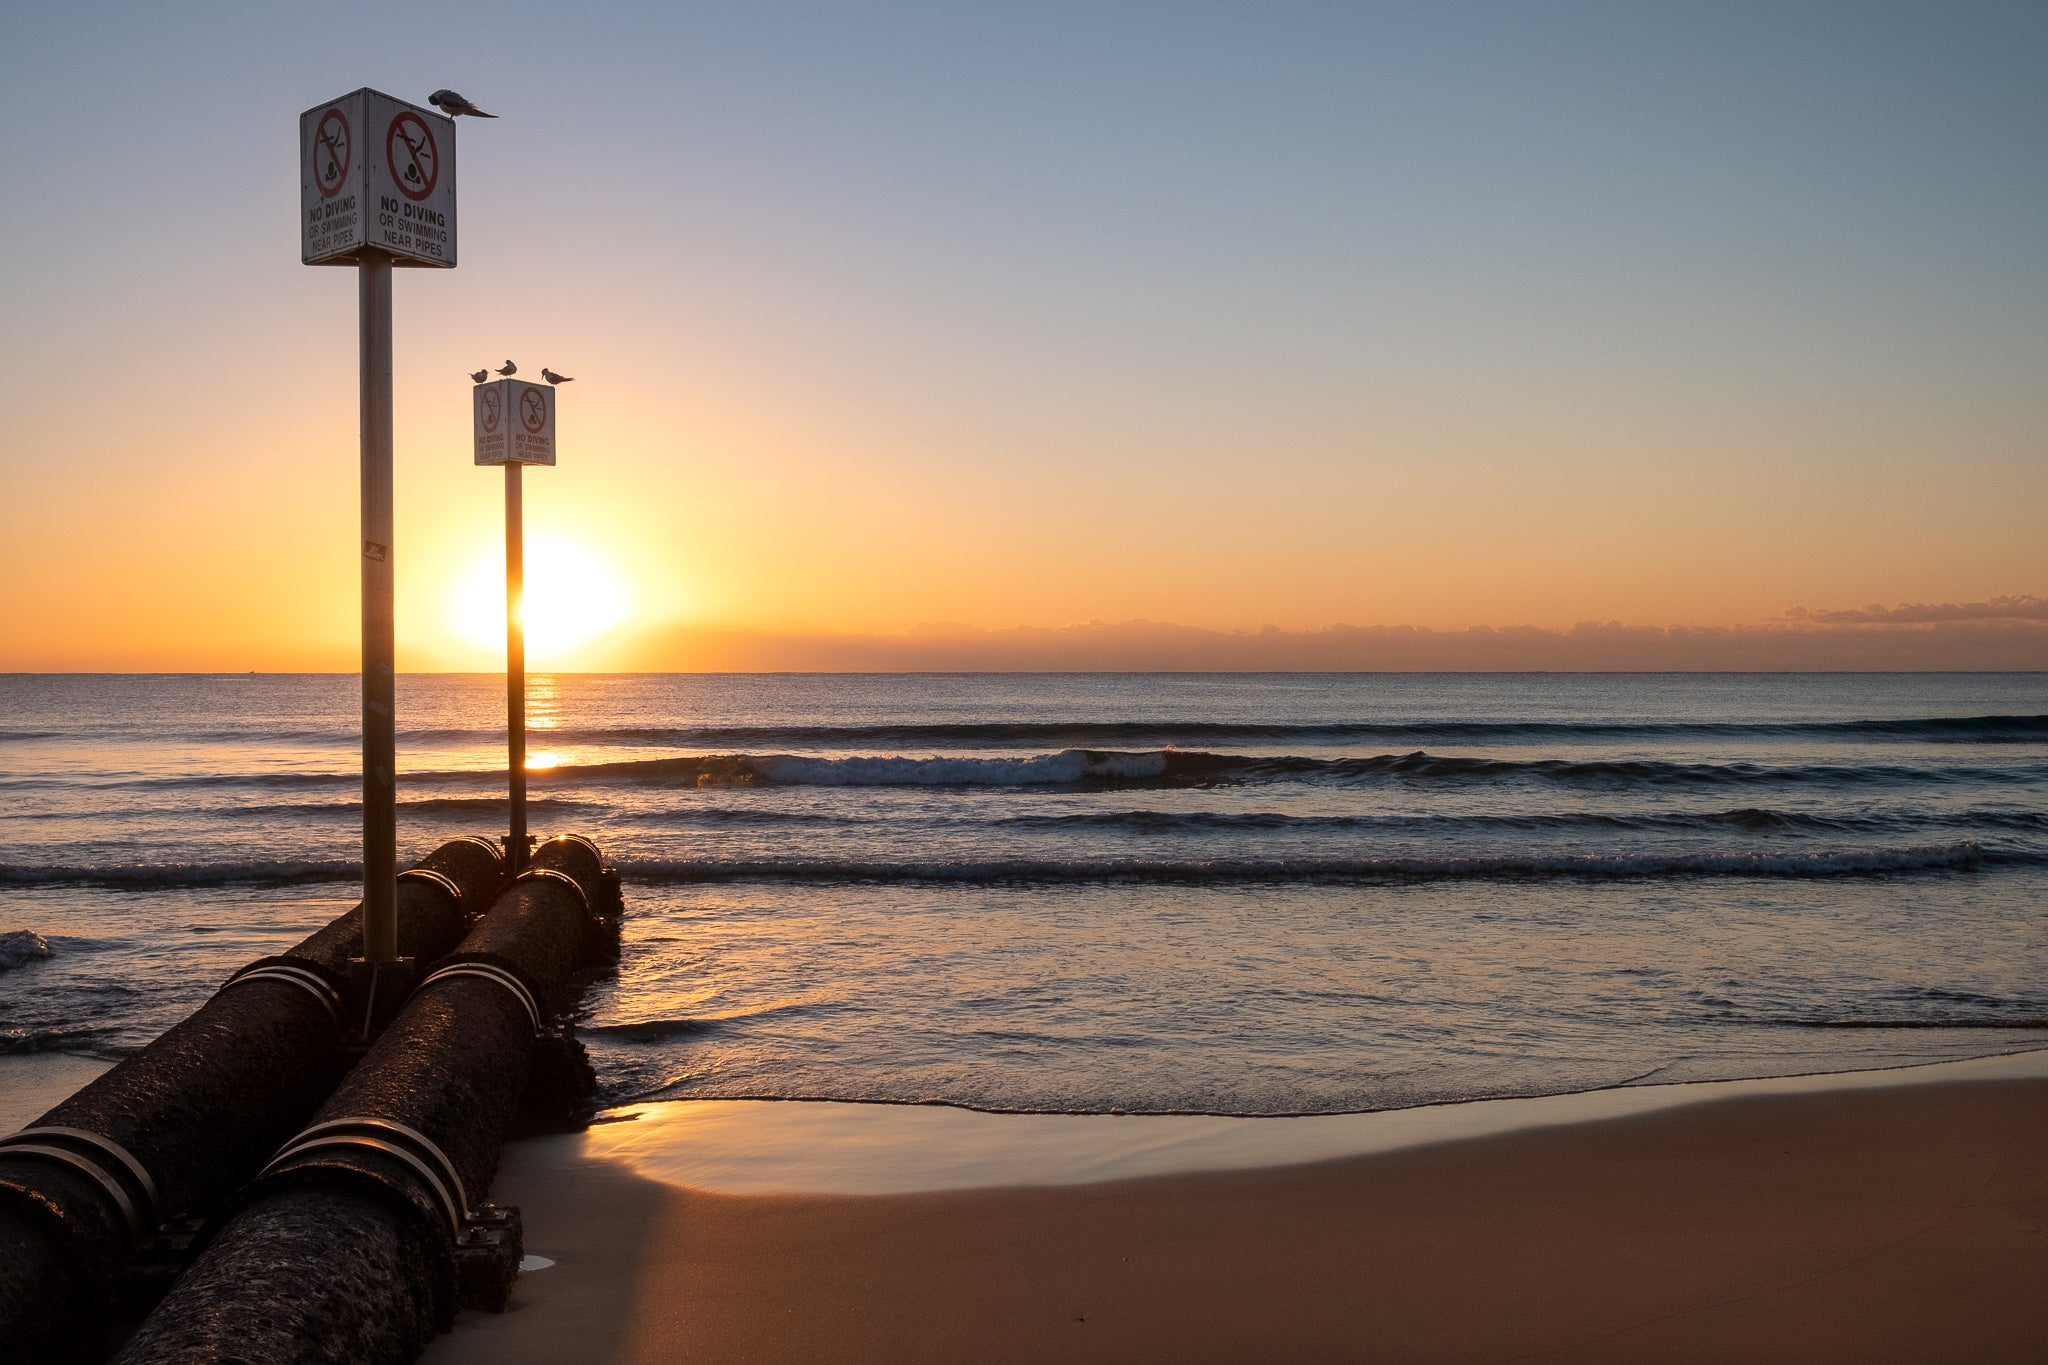 Sunrise photo from the 18th August 2019 at Manly Beach in Sydney